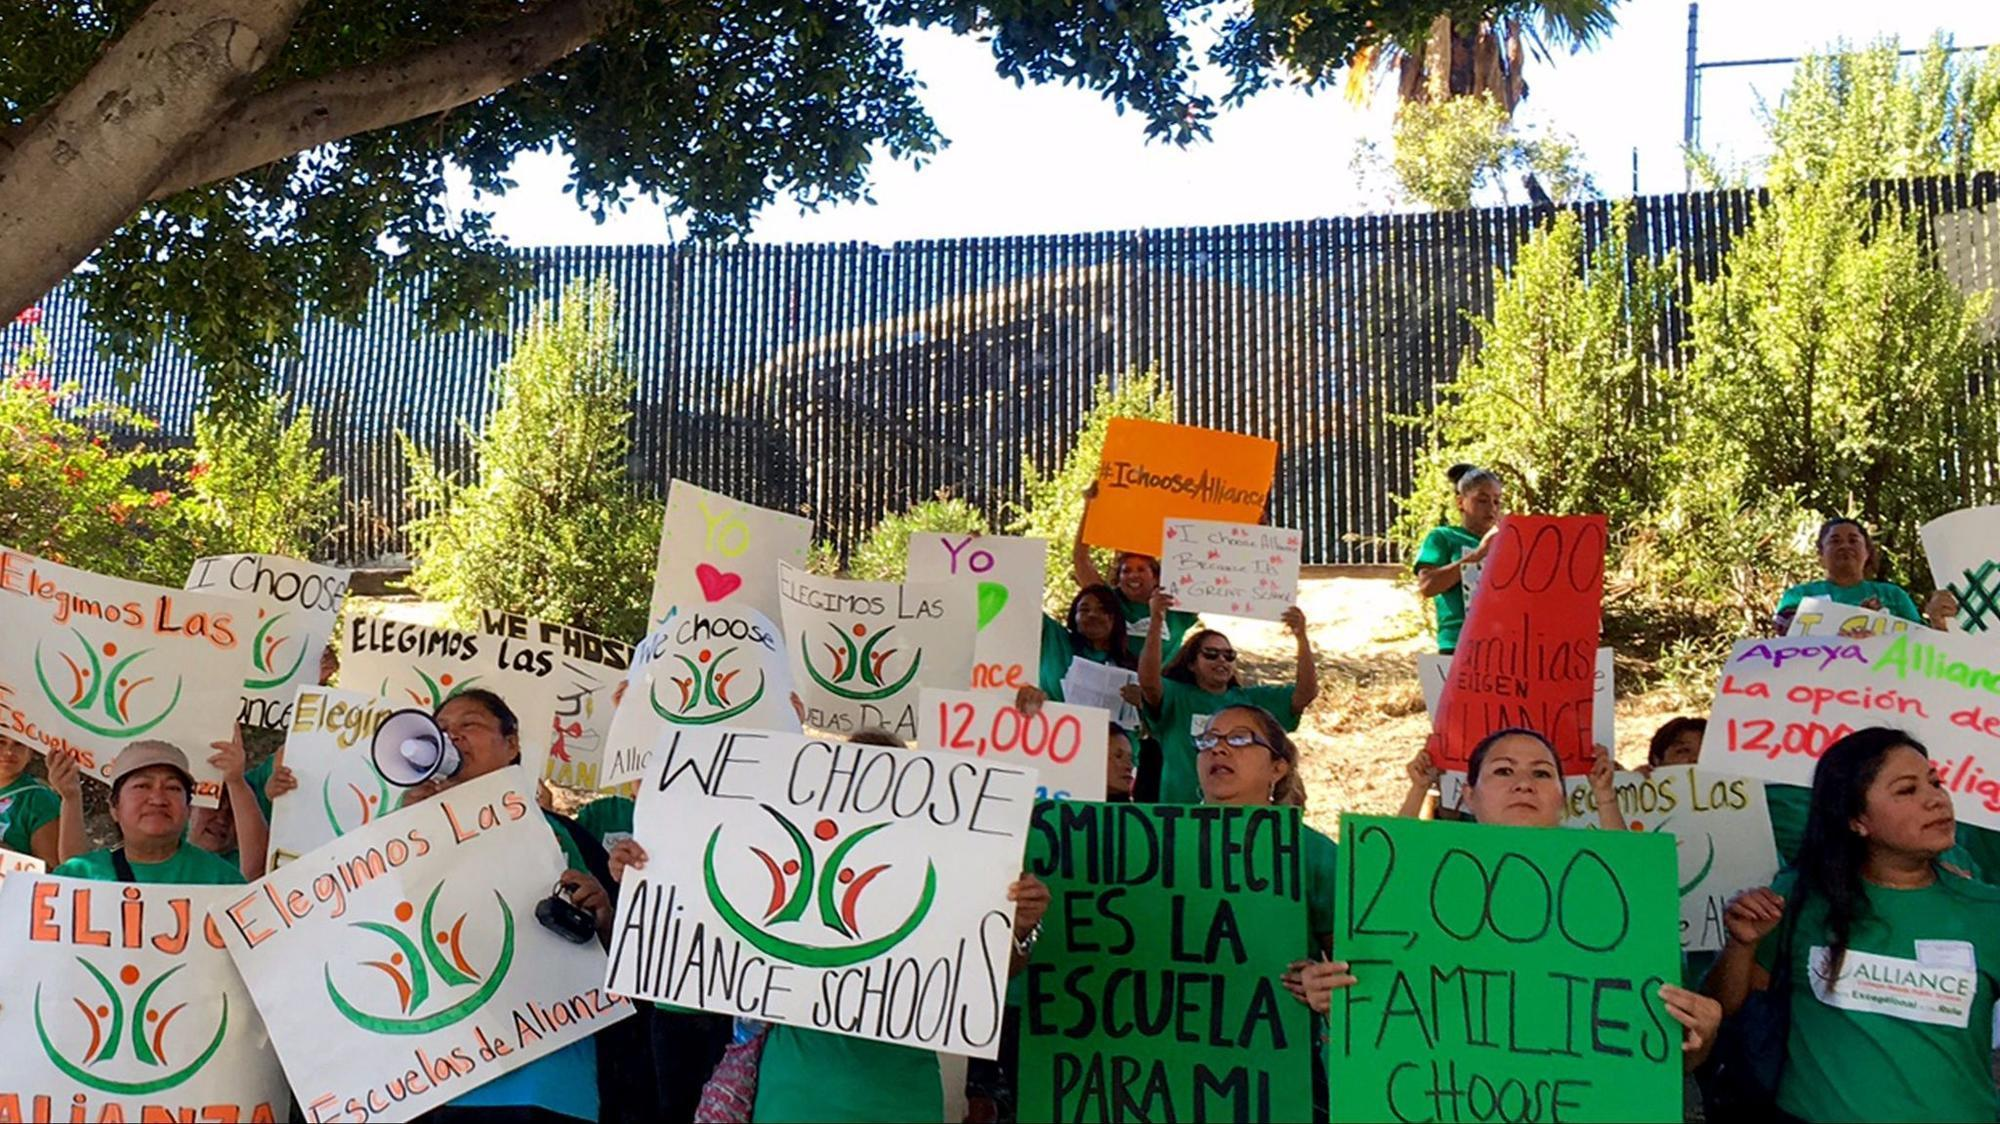 Showdown looming between L.A. Unified and charter schools